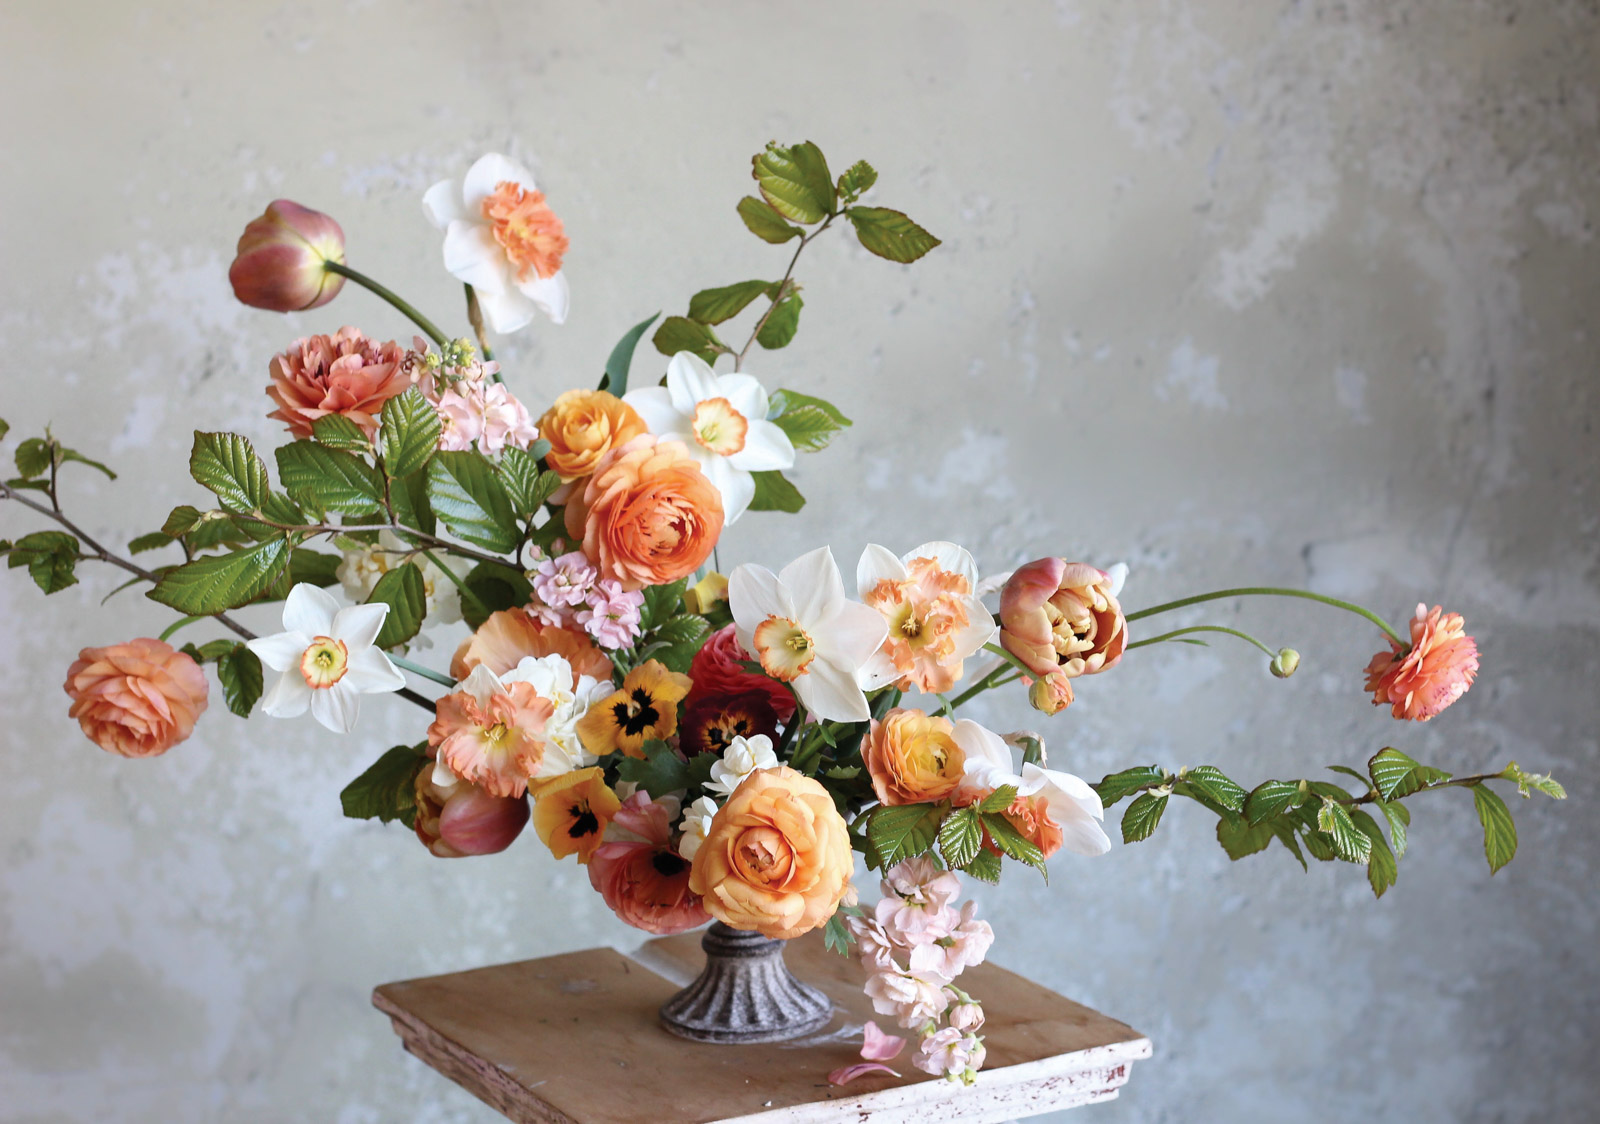 Sustainable floristry by Christin Geall